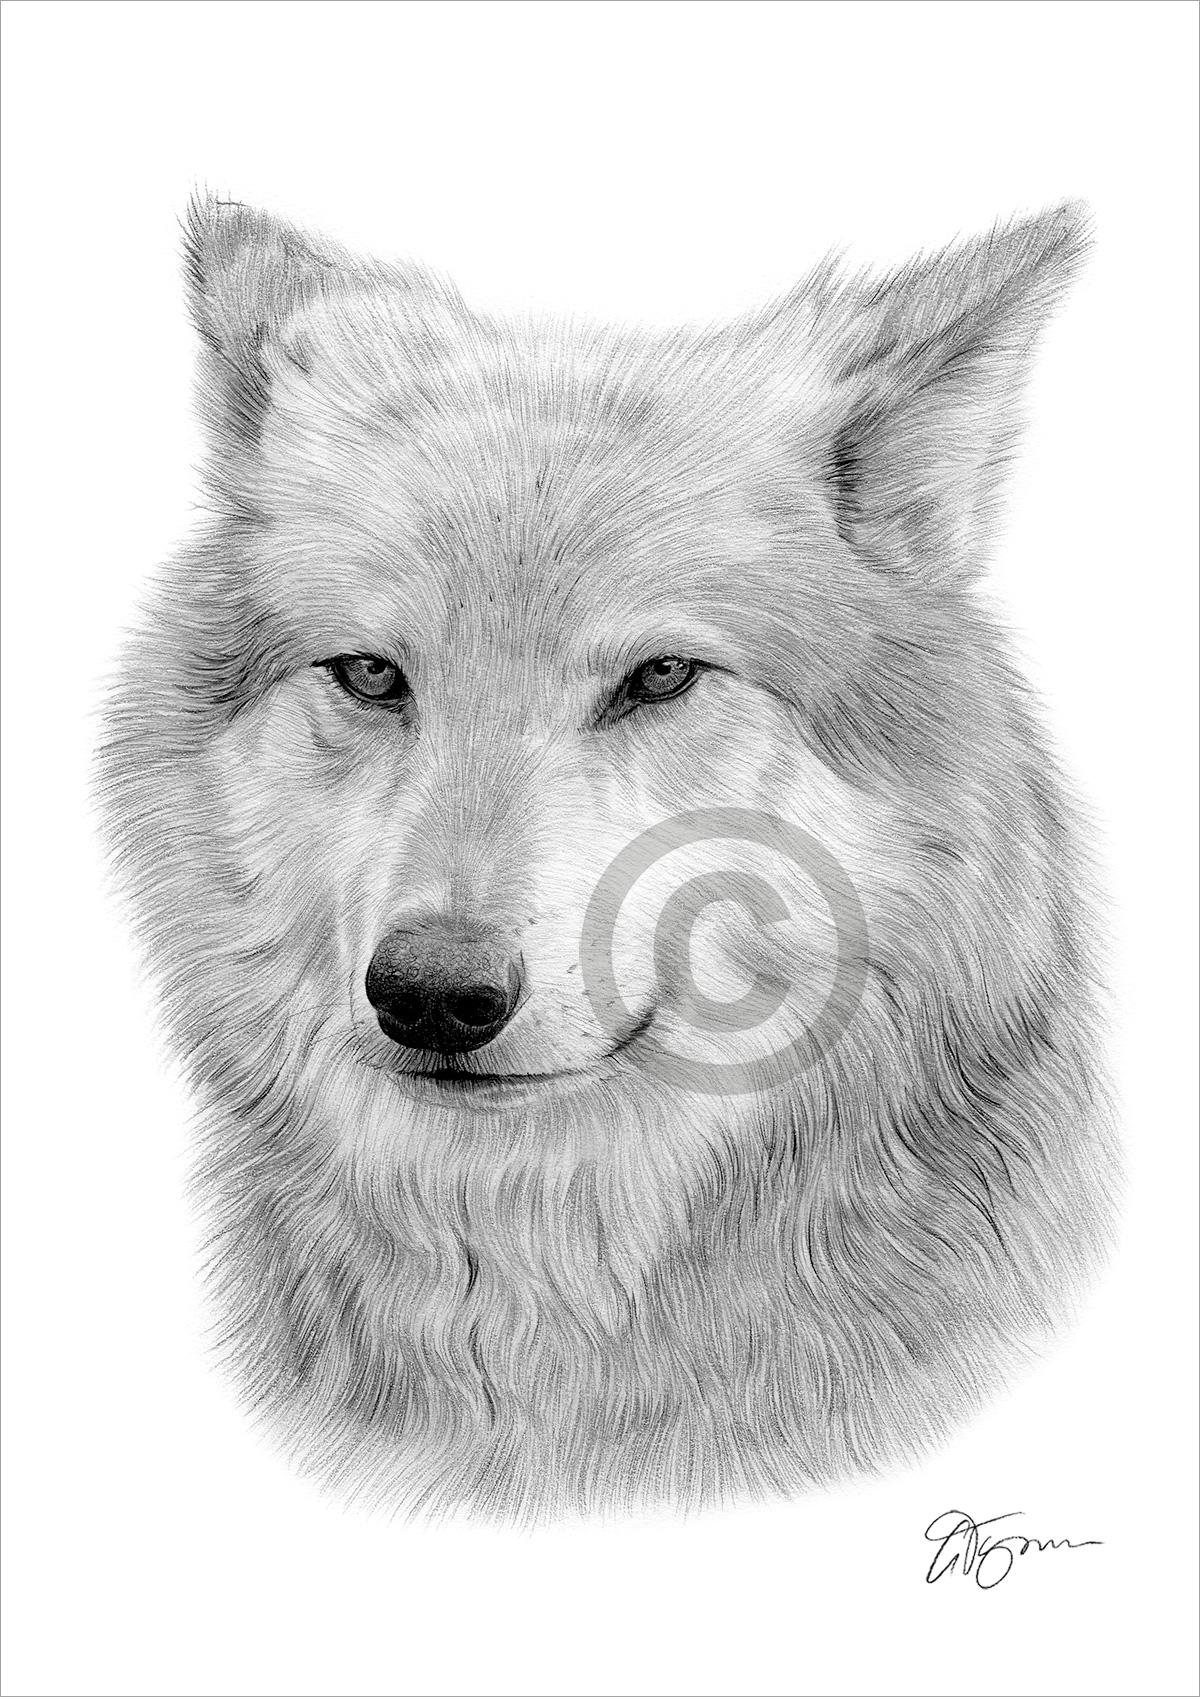 Details about portrait of grey wolf pencil drawing print a3 a4 sizes signed artwork